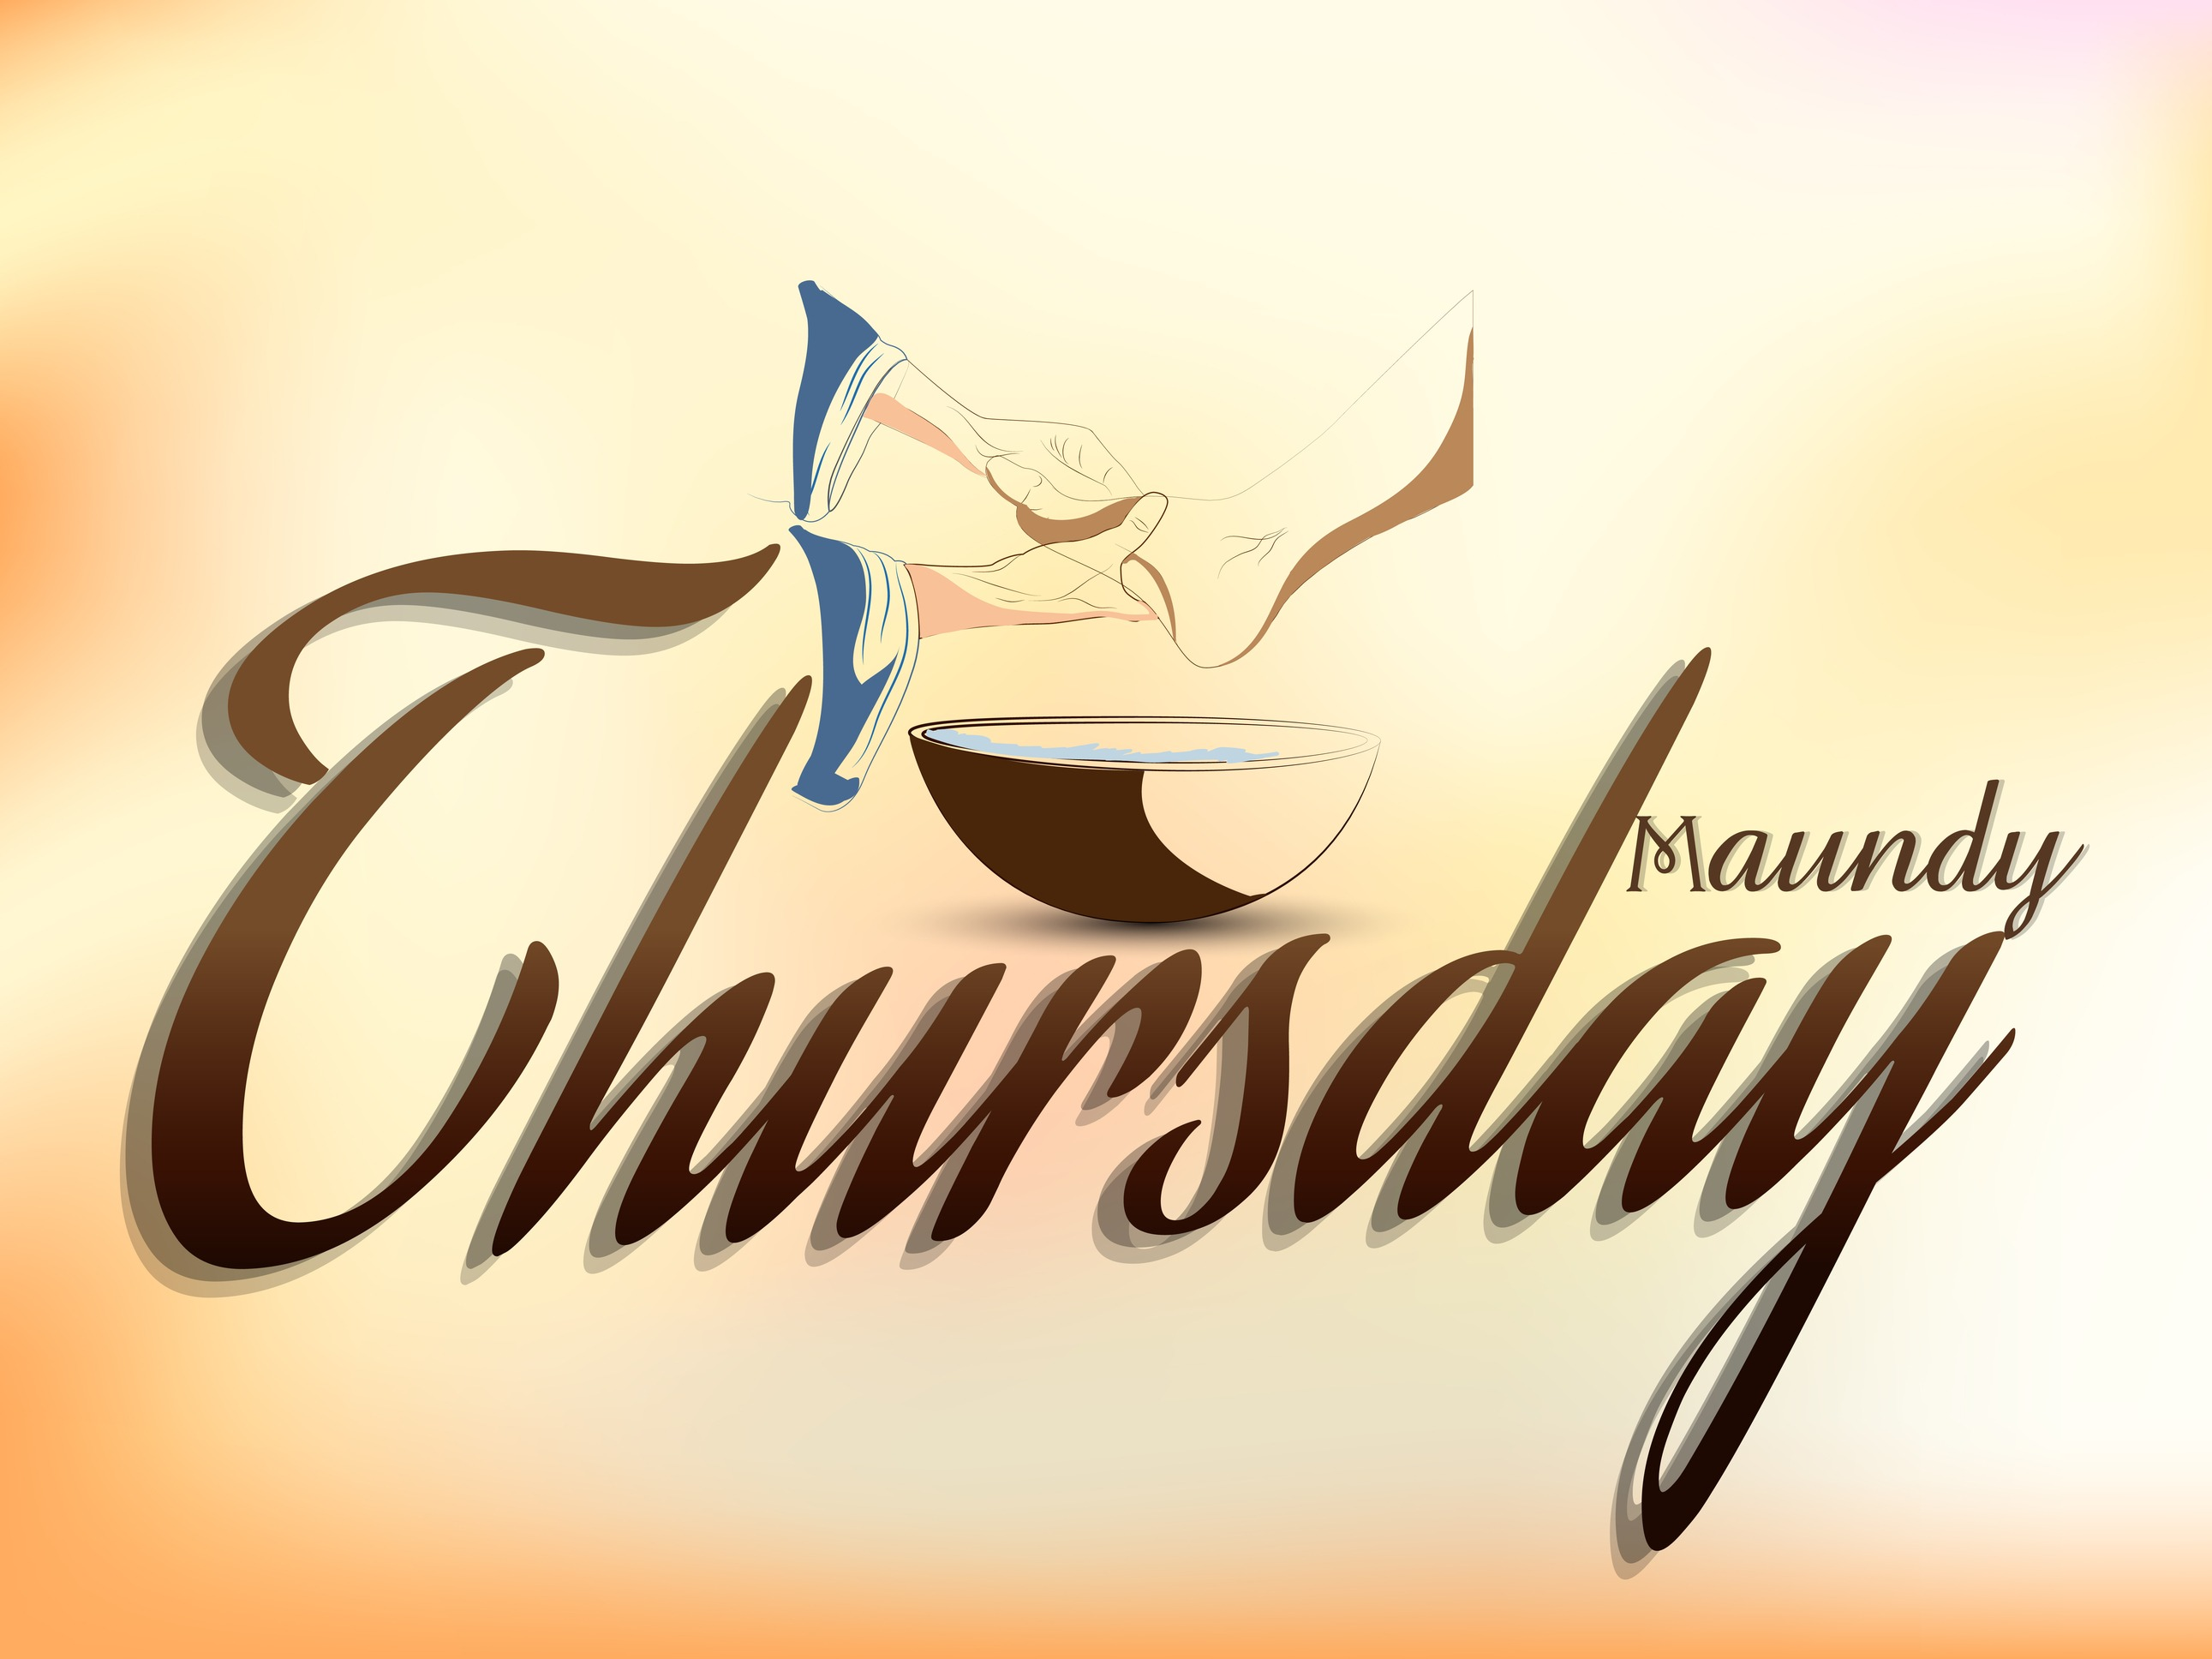 Maundy Thursday 2019: Wishes, Greetings, Inspirational Quotes And Prayers